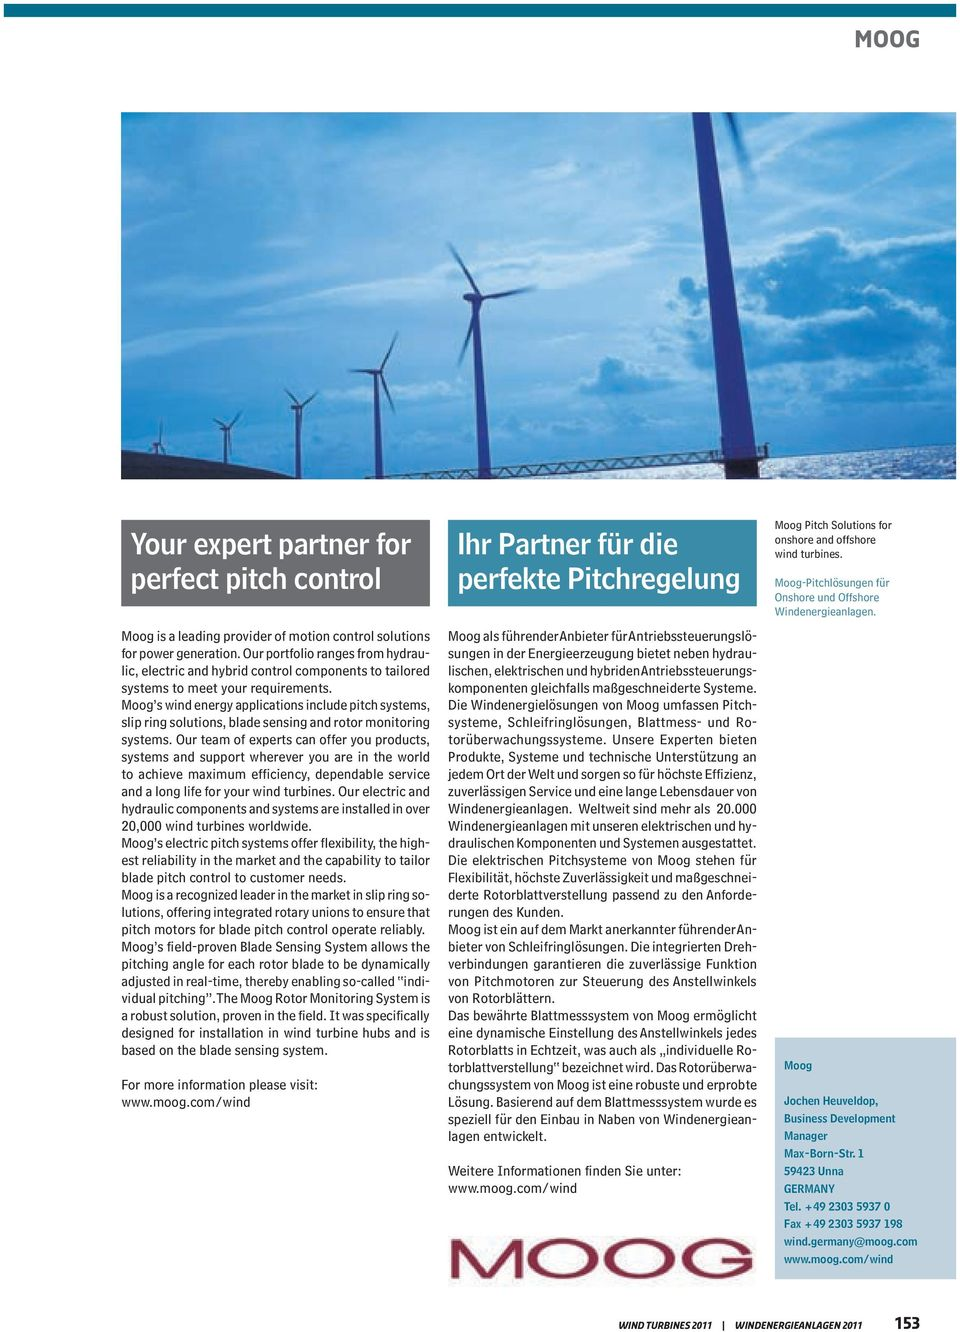 Moog s wind energy applications include pitch systems, slip ring solutions, blade sensing and rotor monitoring systems.